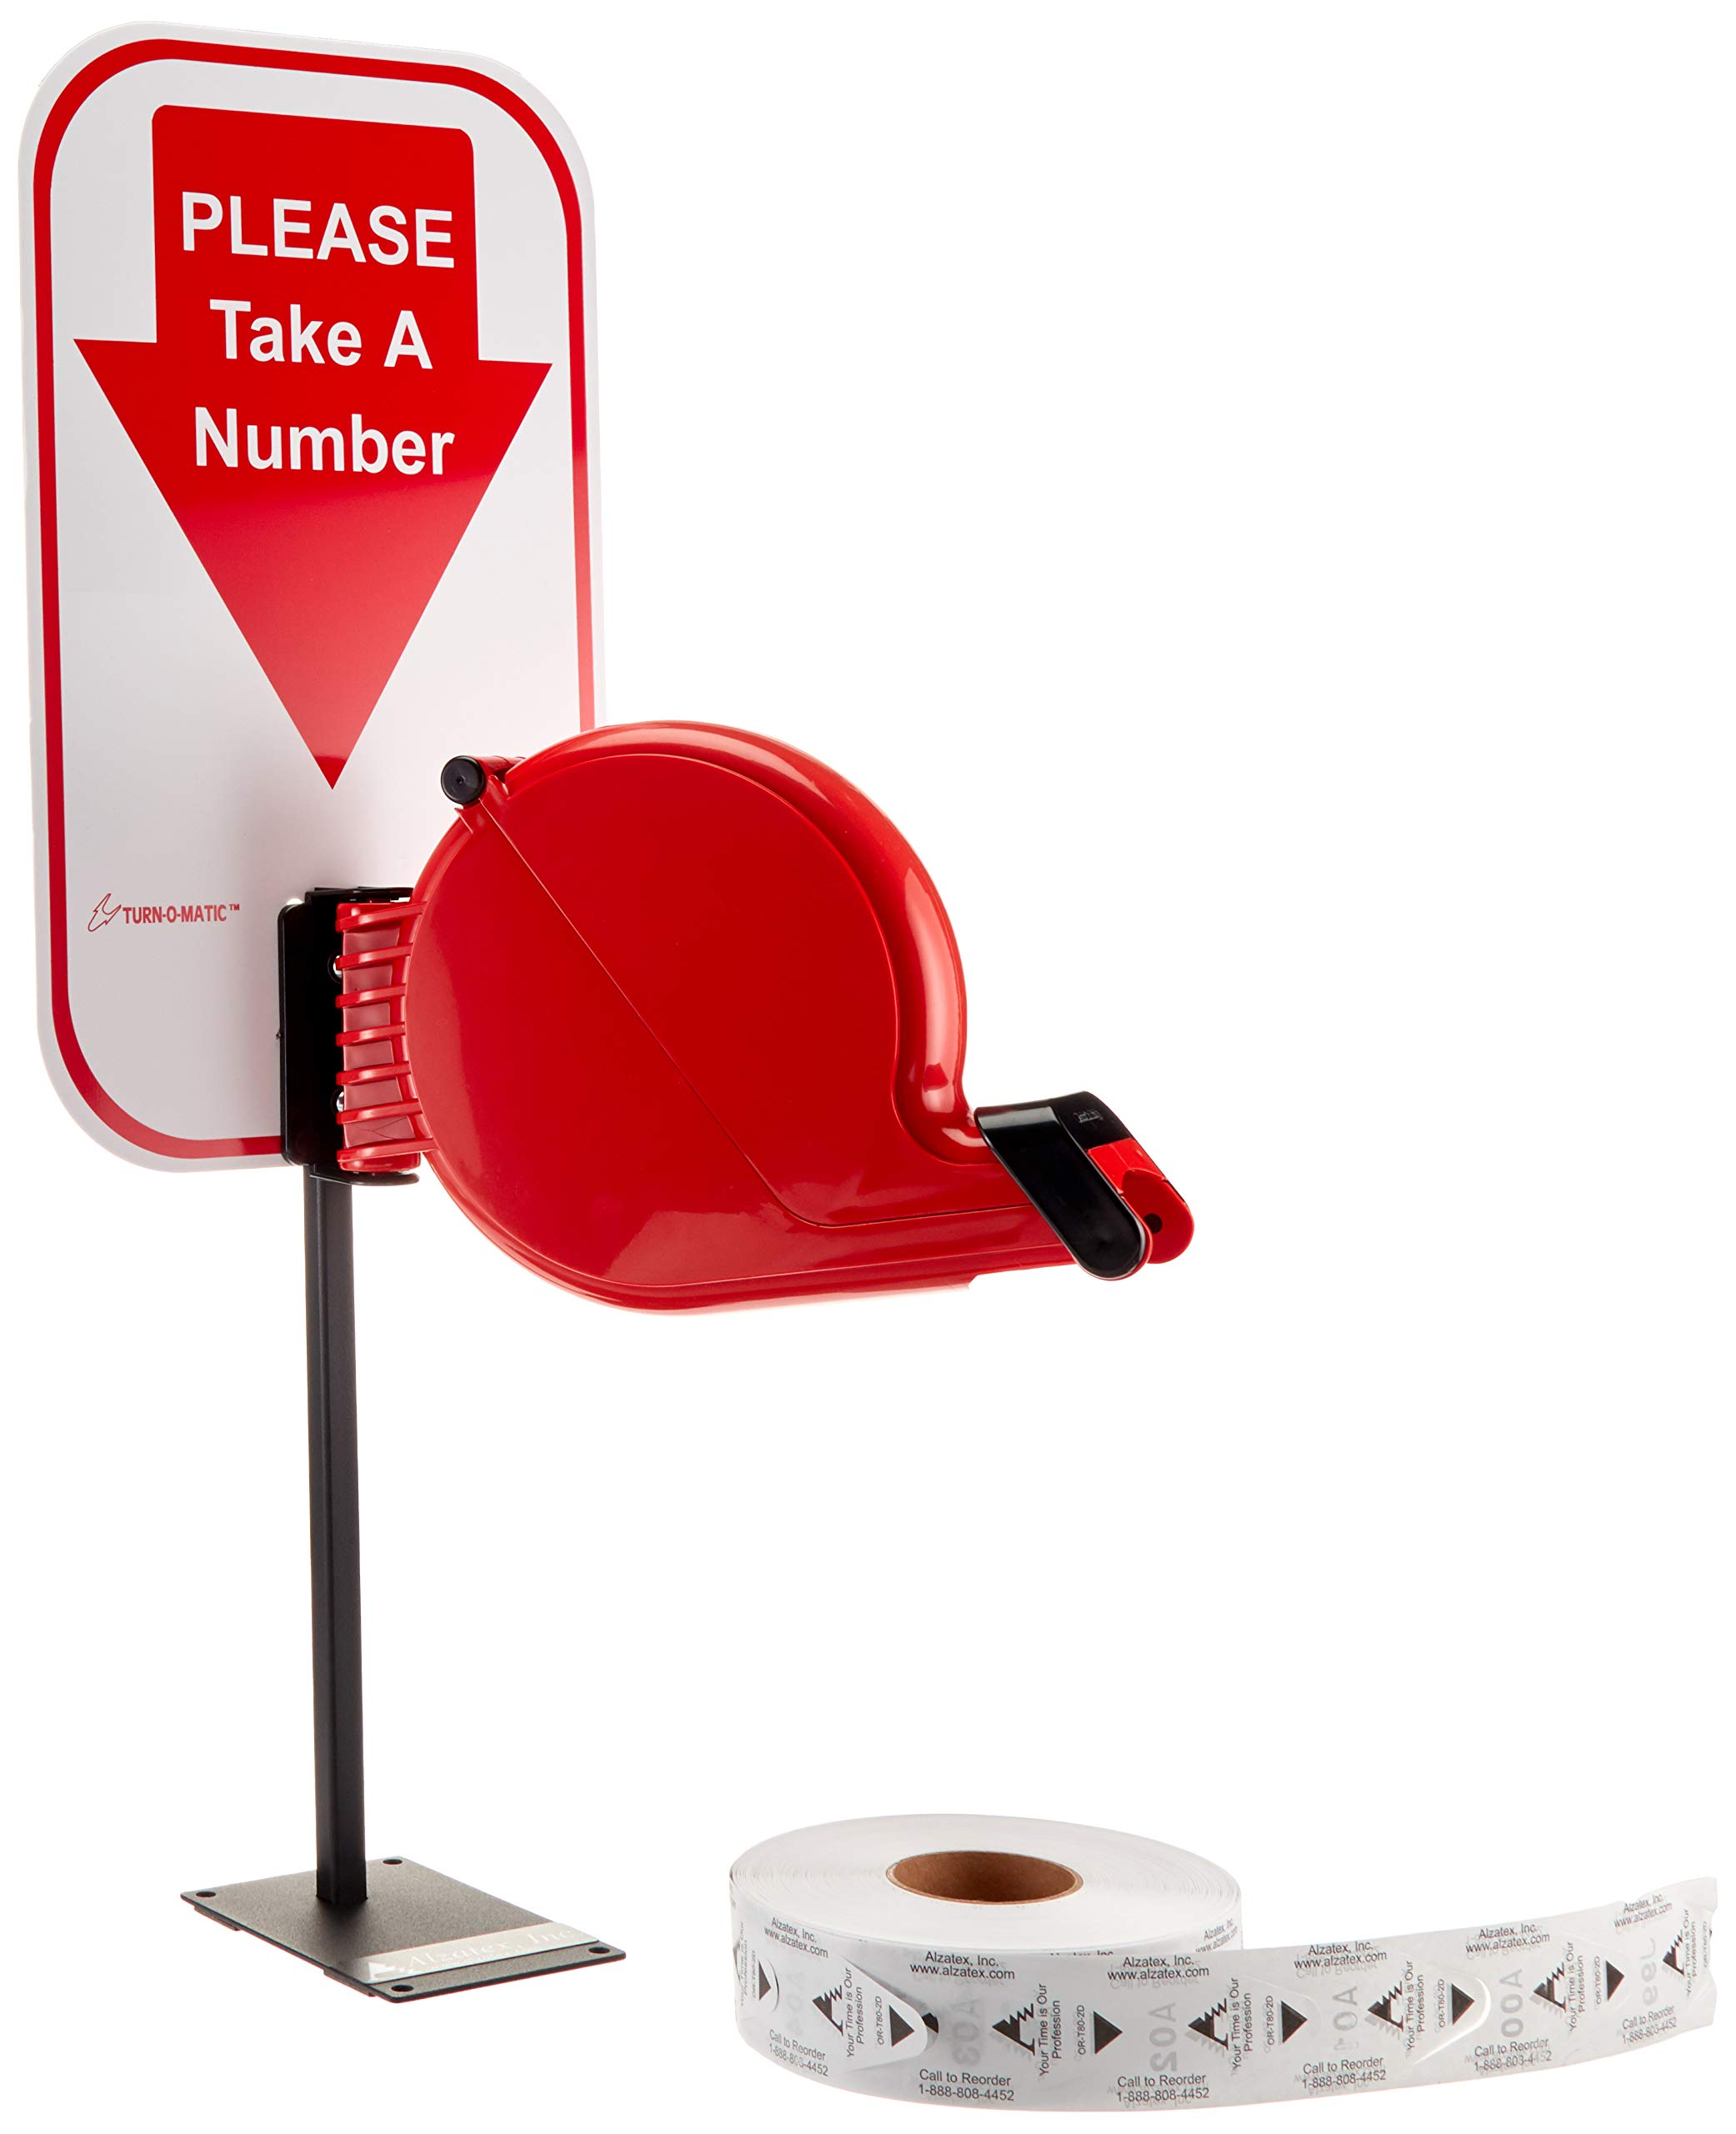 Alzatex Take-a-Number System Ticket Dispenser Includes one roll of T-80 Two-Digit x 3000 Tickets, Please Take A Number Sign and Counter top Stand for Waiting line Management